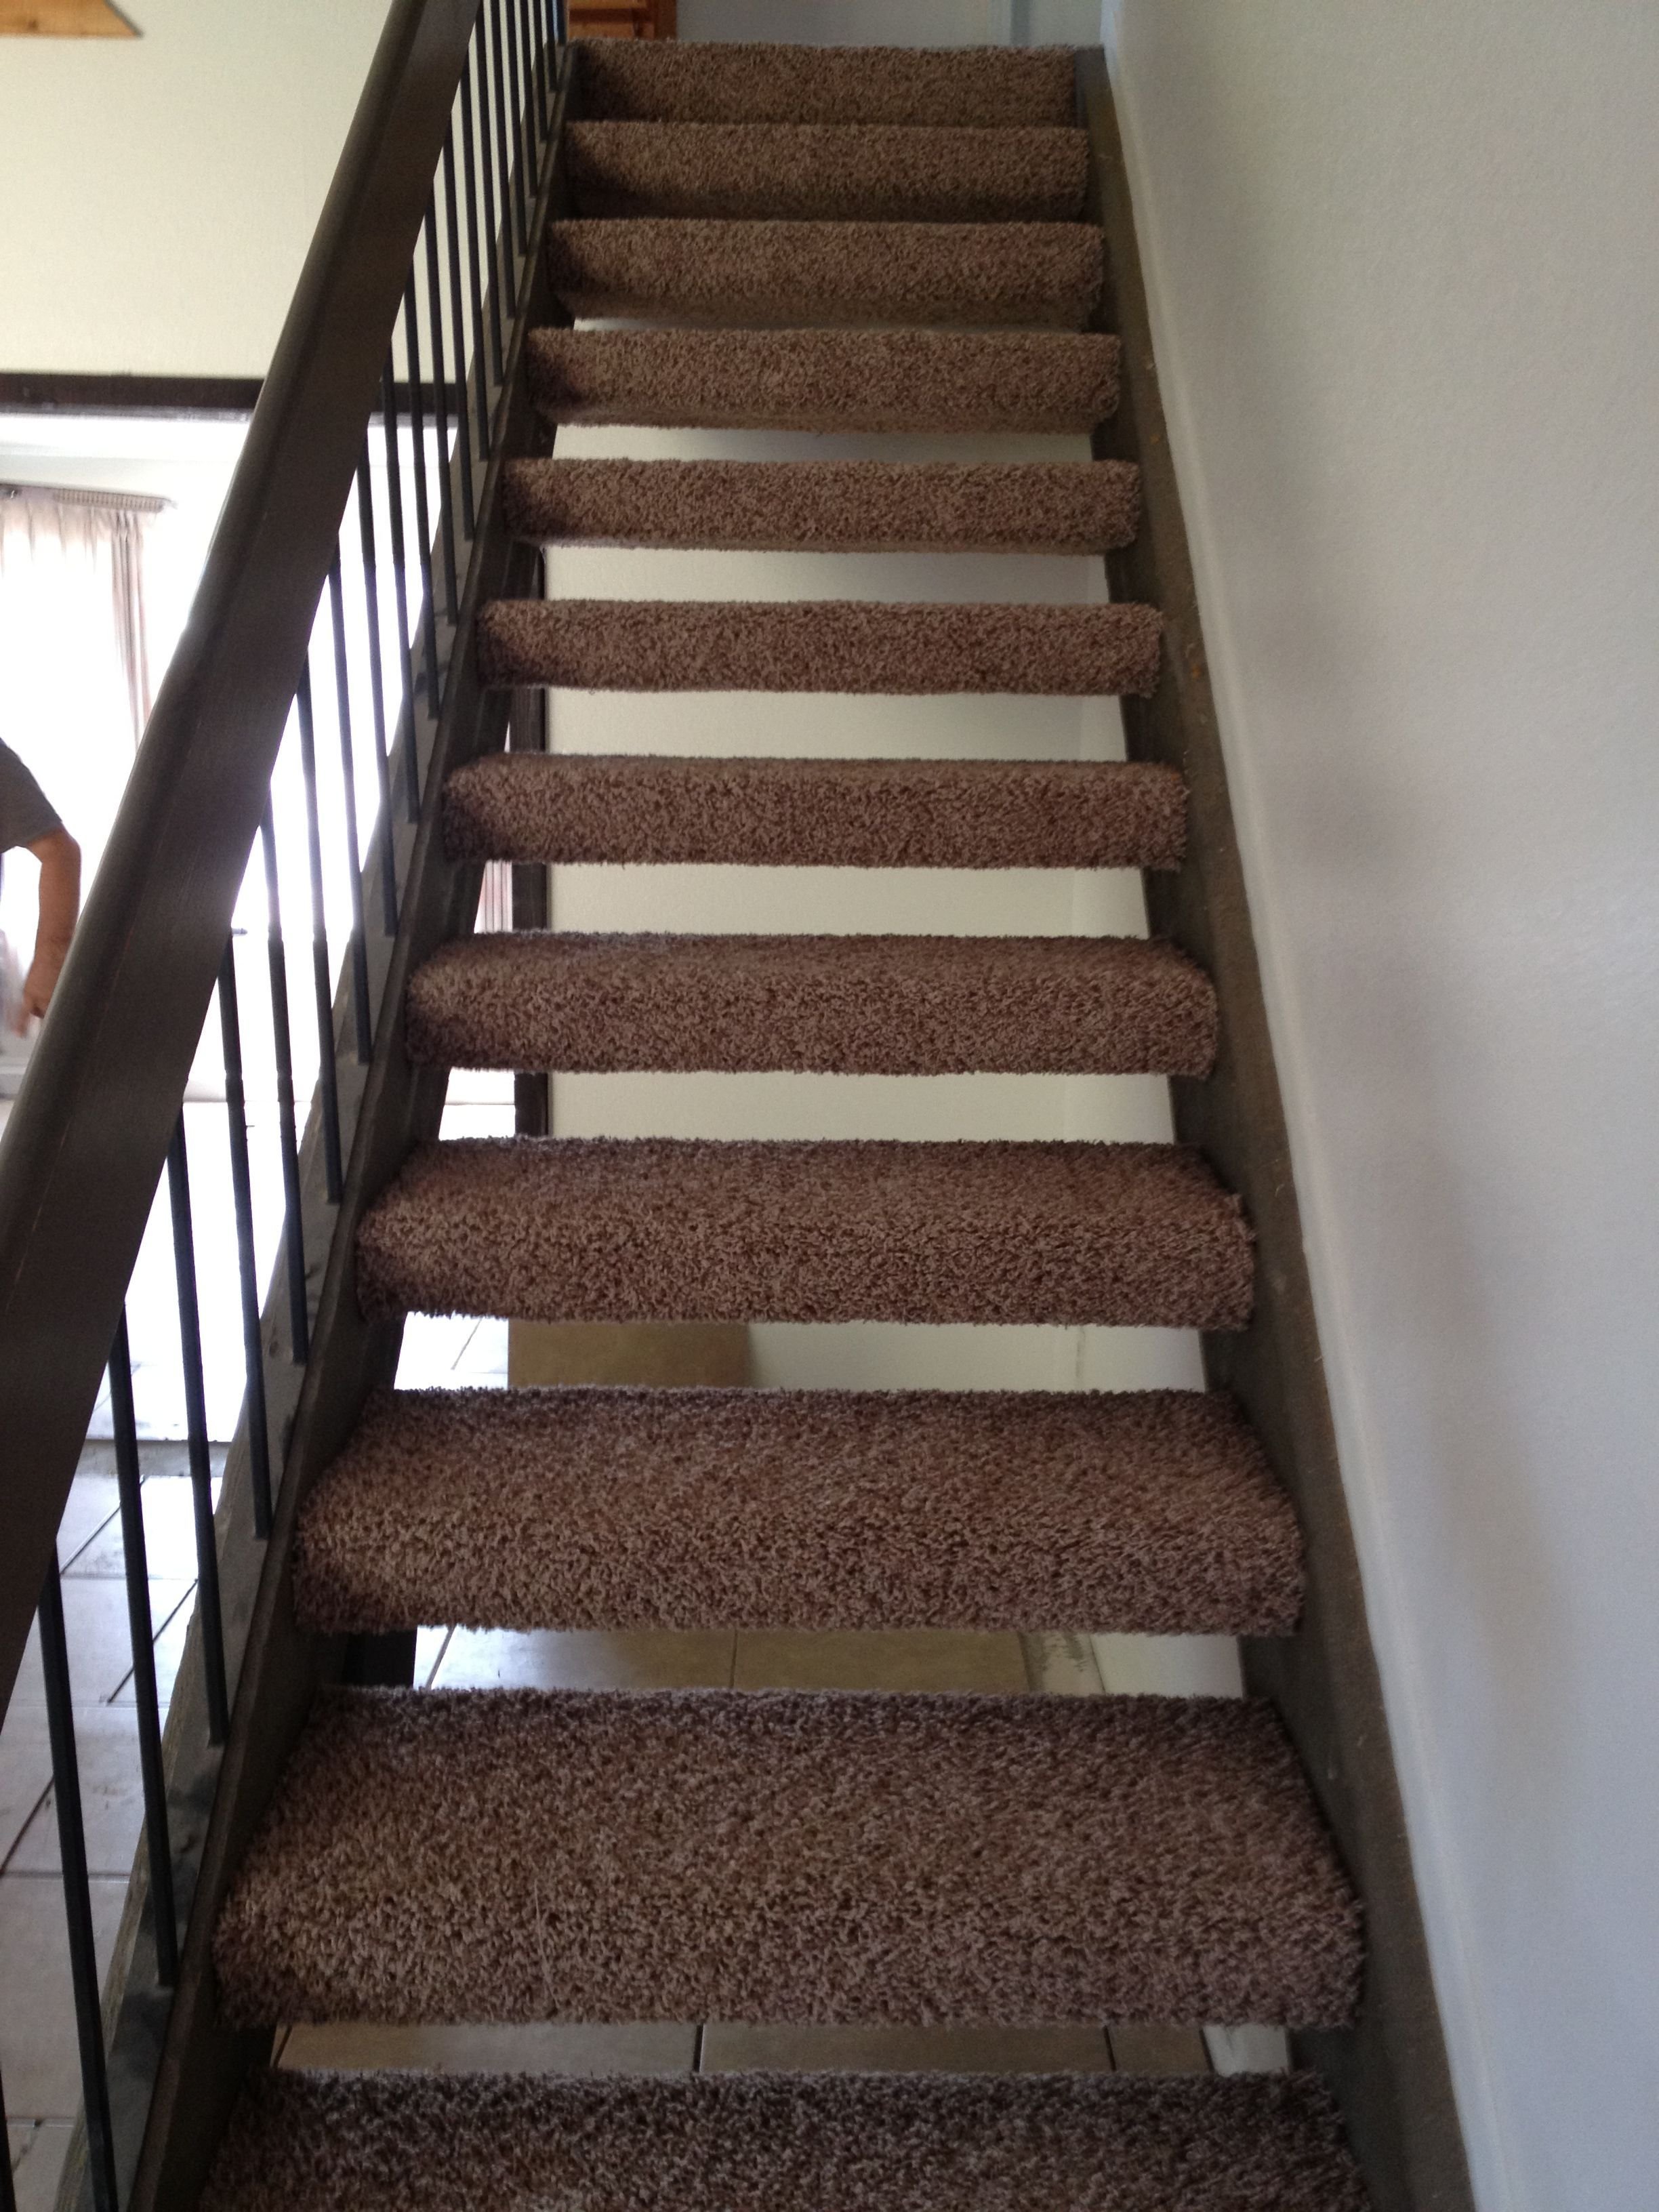 Best Image Result For Floating Stairs With Railing Middle Carpet Floating Stairs Stair Railing 400 x 300